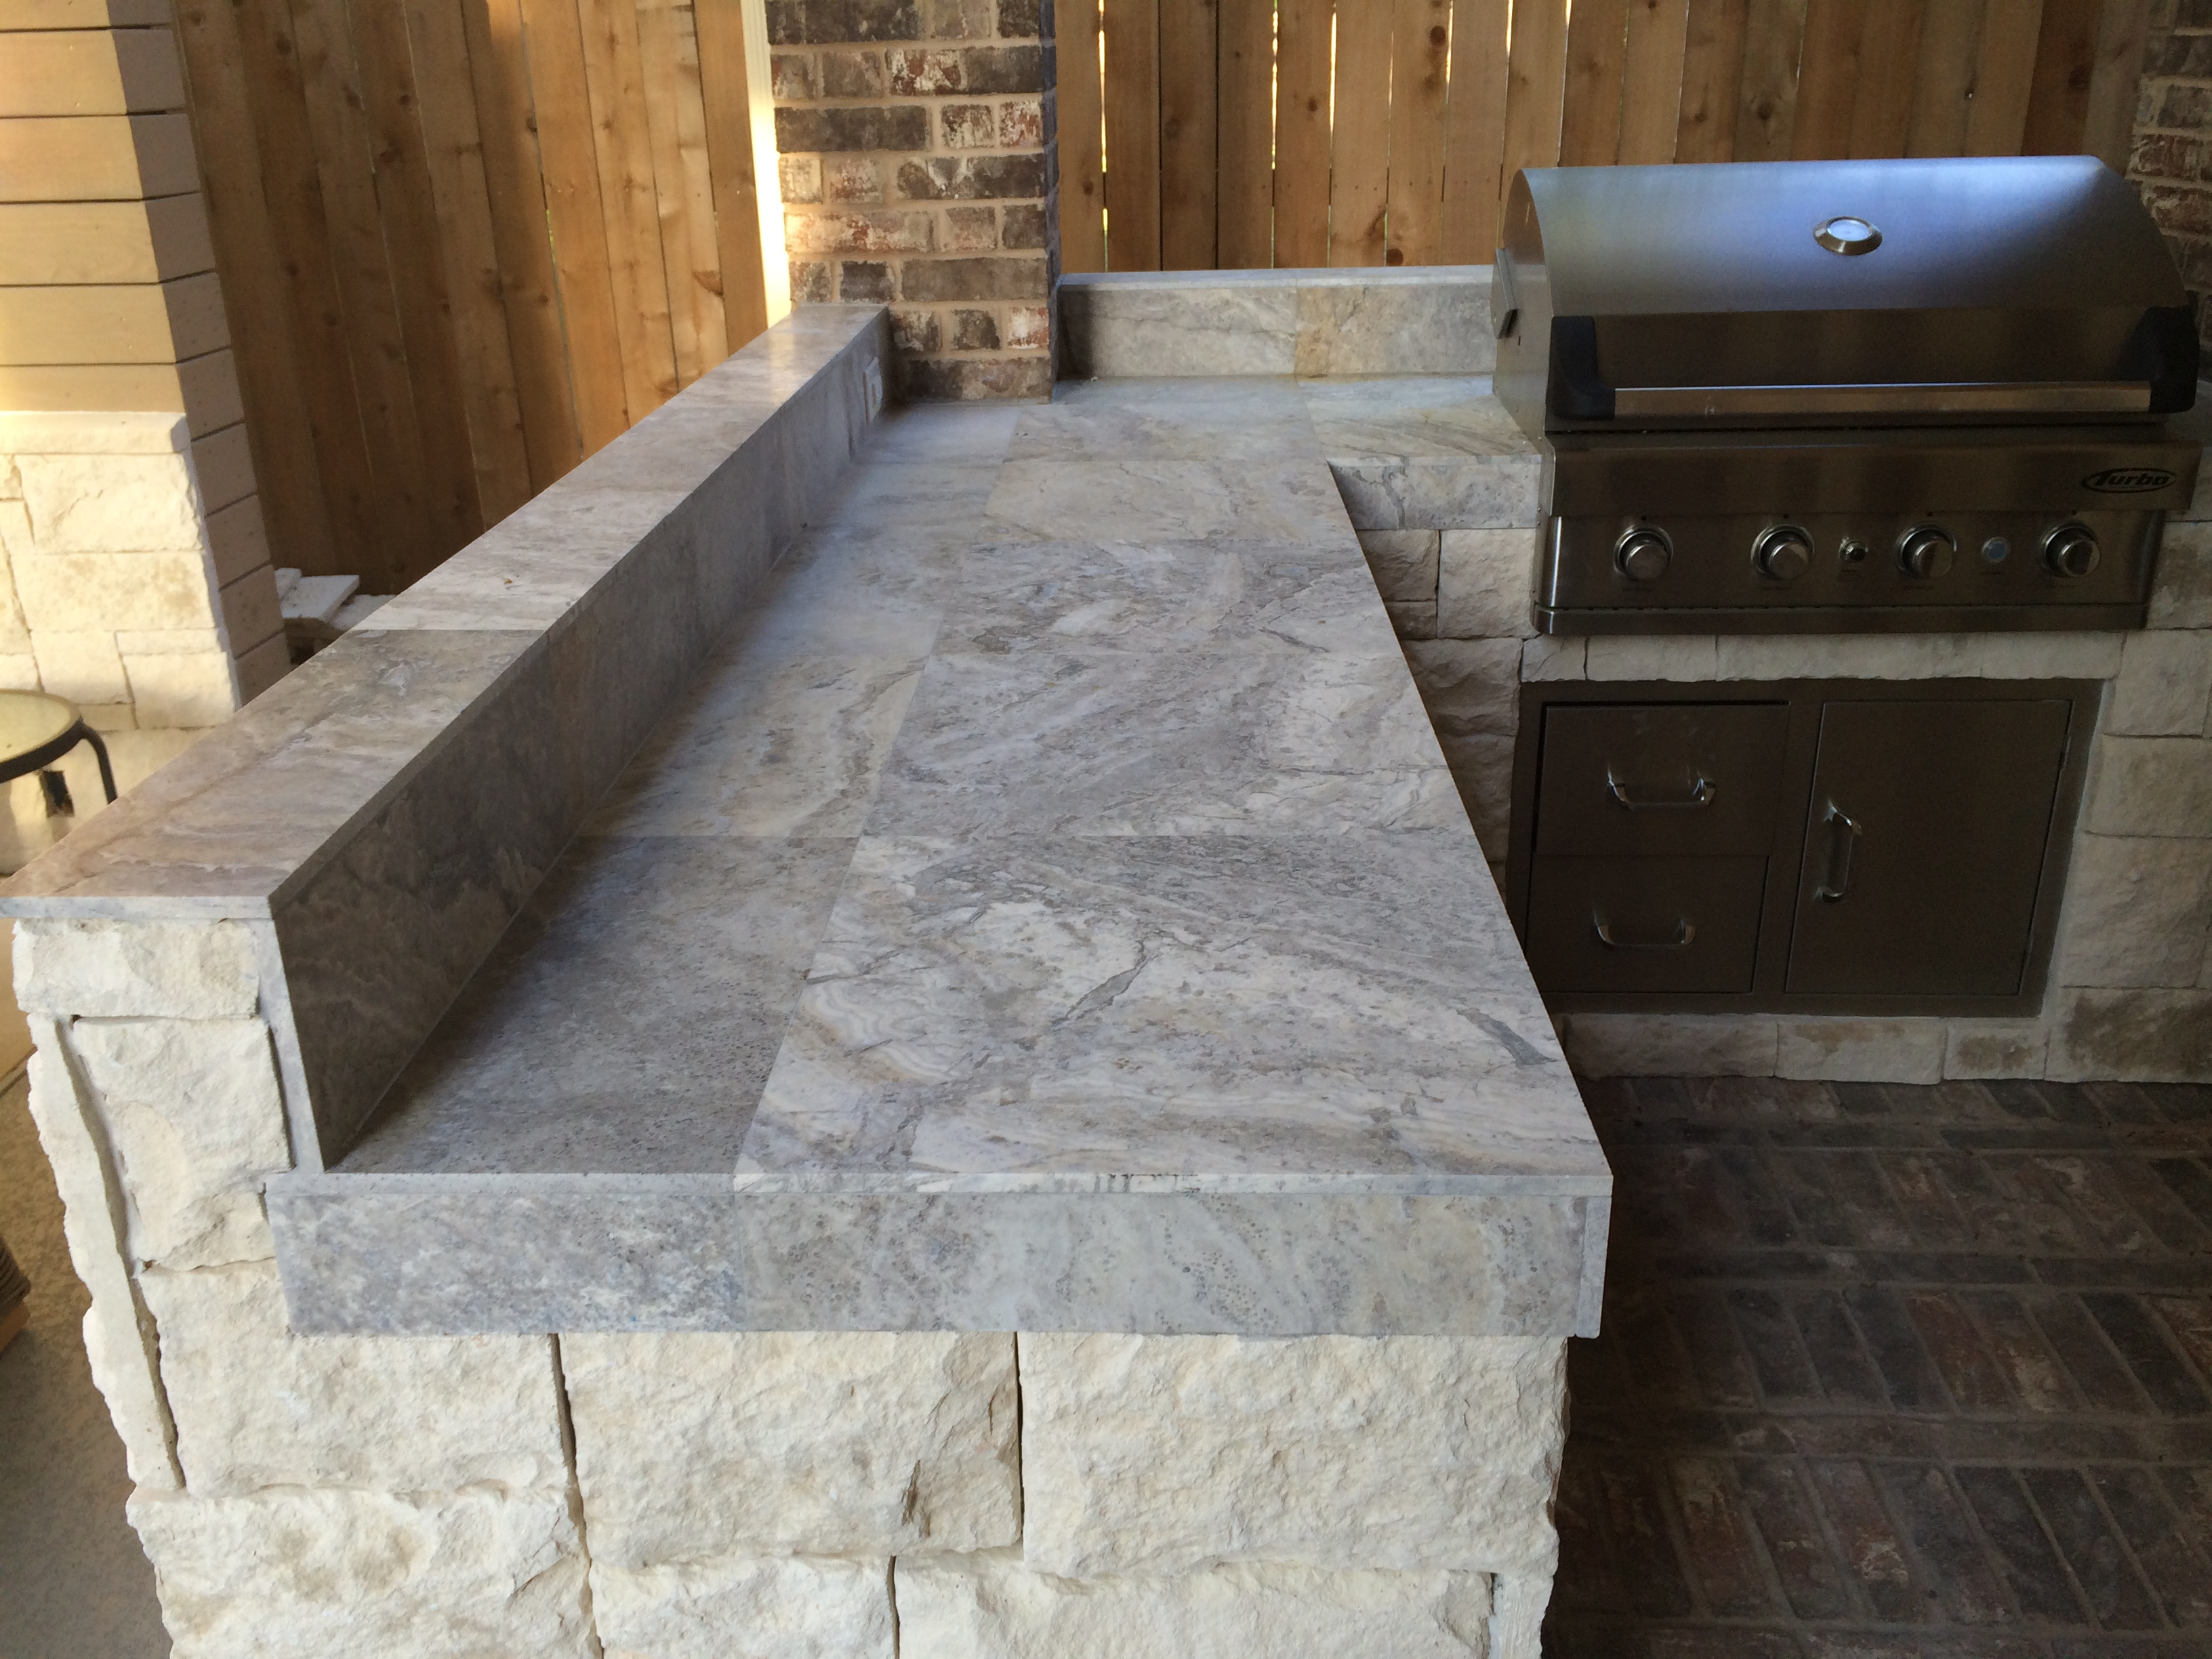 Kitchen Countertop Tile Houston Outdoor Kitchen With Silver Travertine Tile Countertop